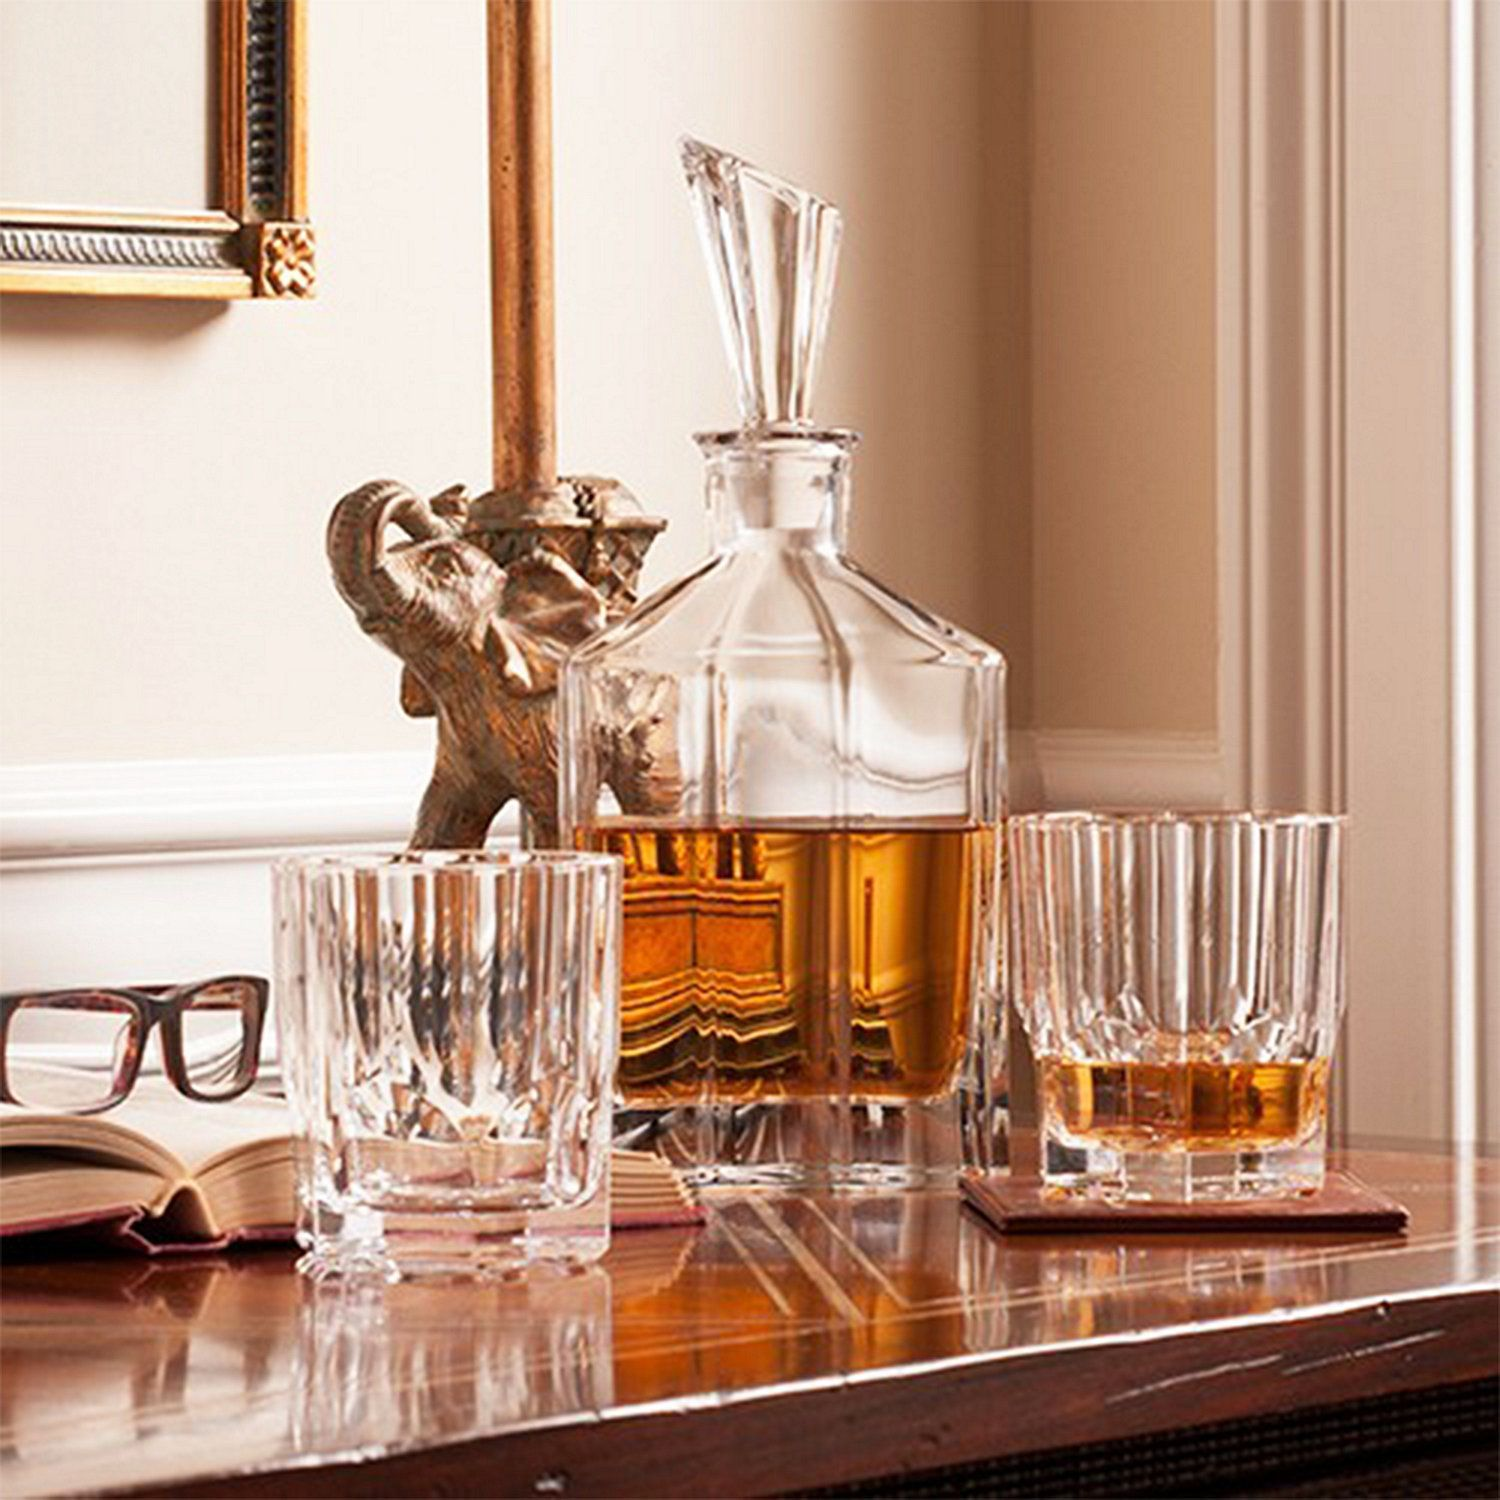 Nachtmann whiskey crystal Set Decanter and Two whiskey Glasses